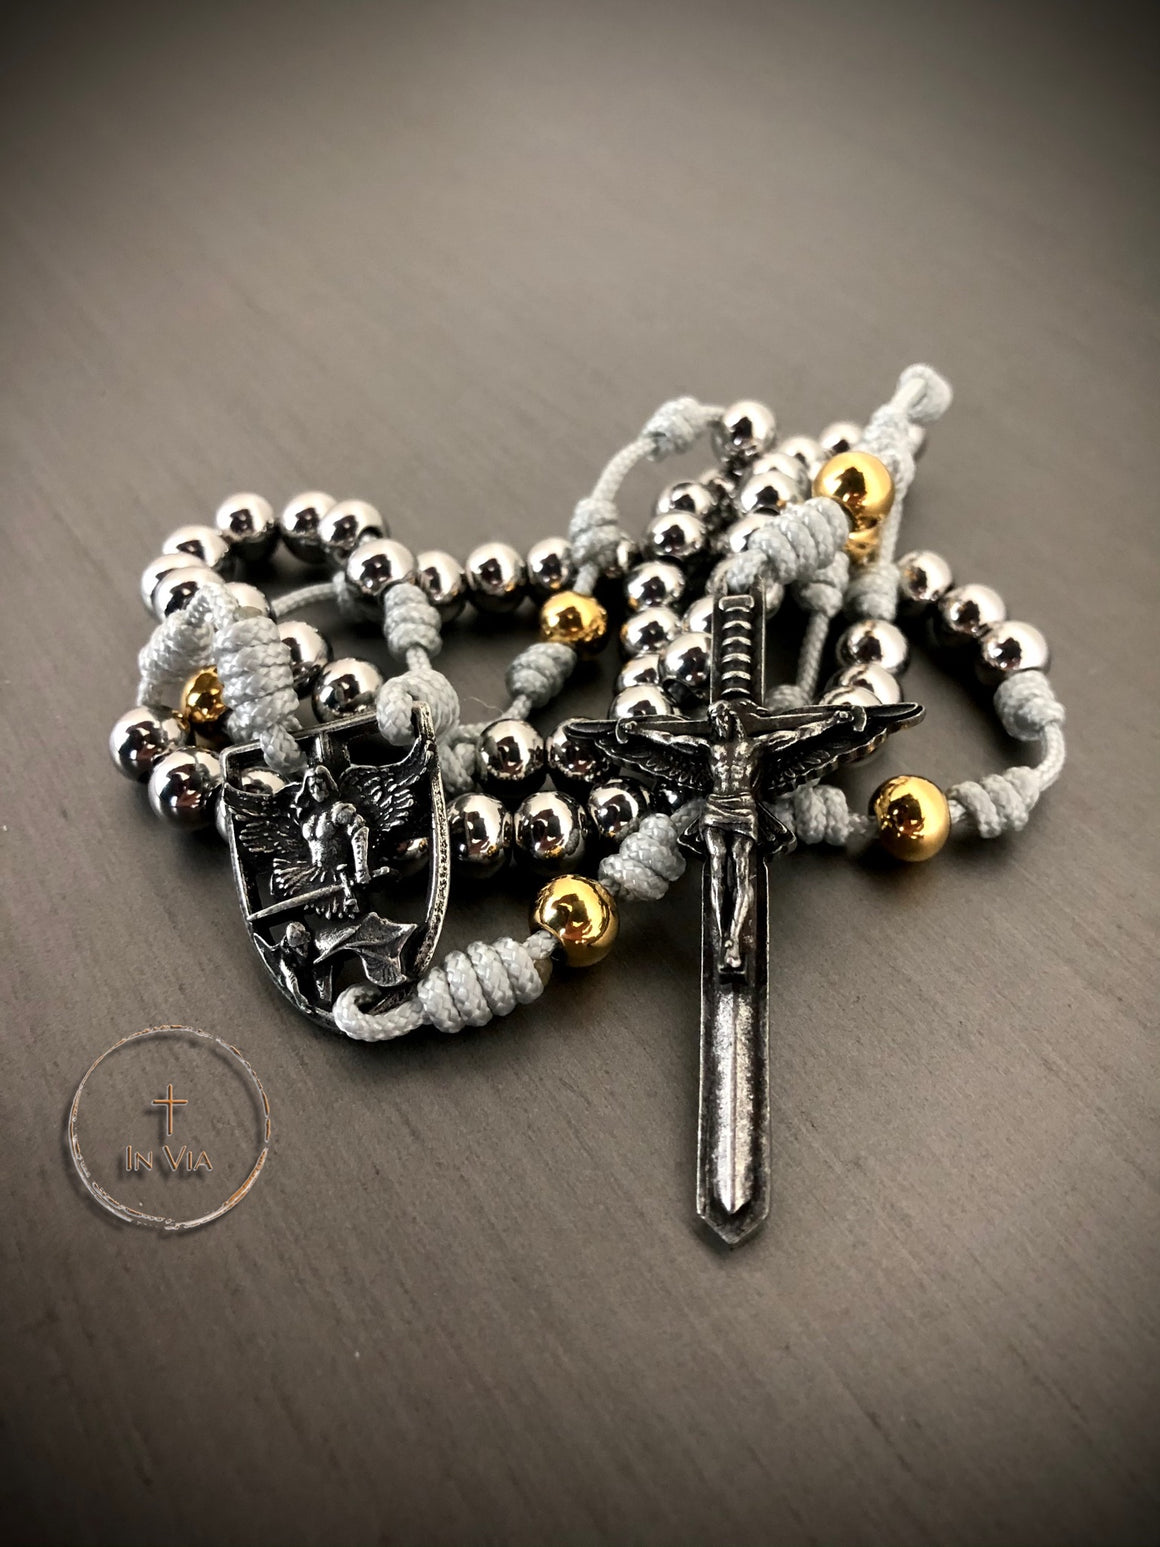 In Via St. Michael Guardian Rosary -Stainless Steel